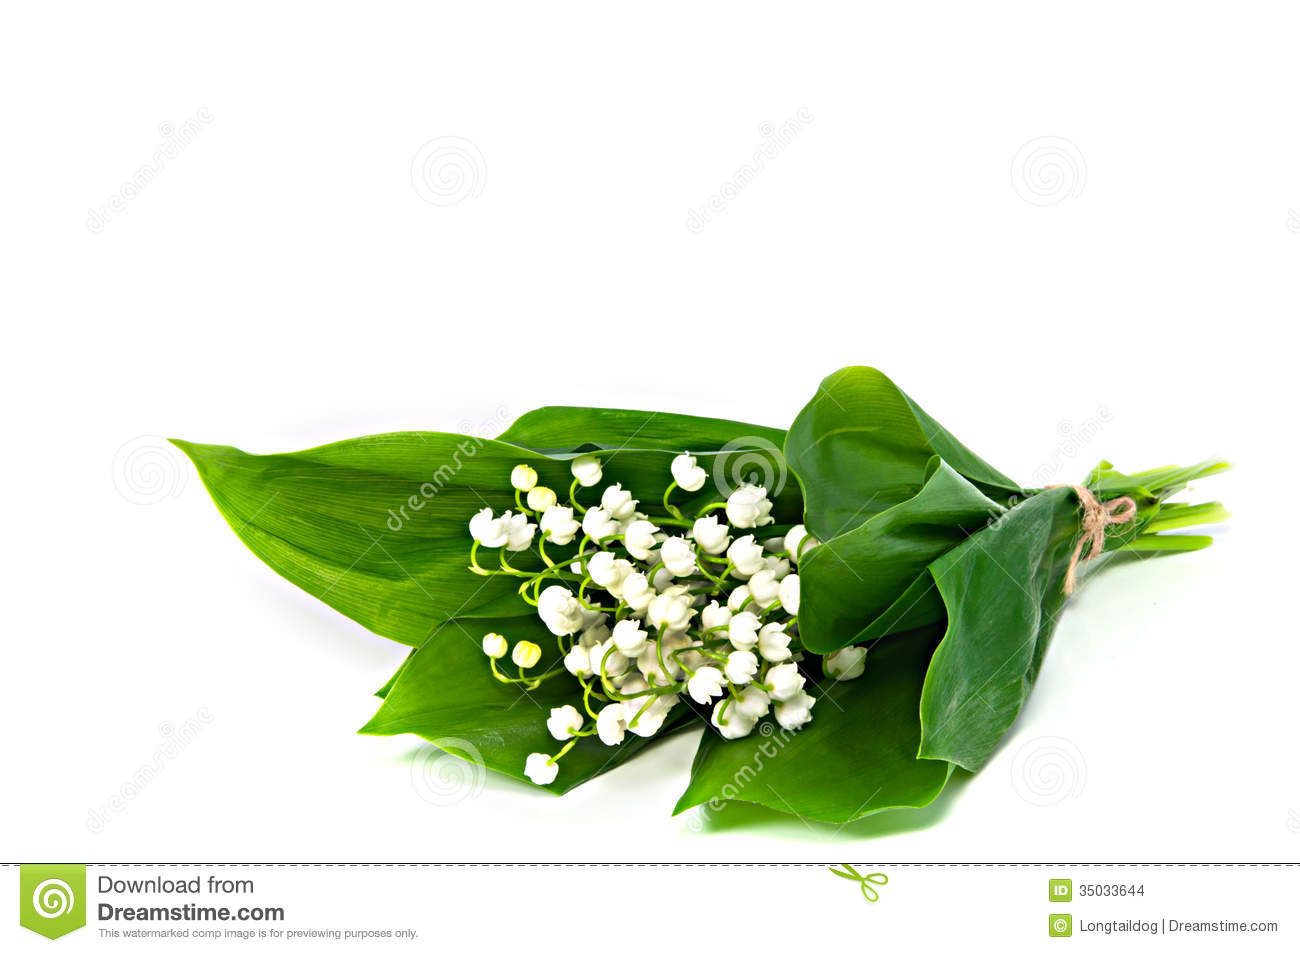 Flowers of lily of the valley stock photo image of plant flowers of lily of the valley stock photo image of plant beautiful 35033644 izmirmasajfo